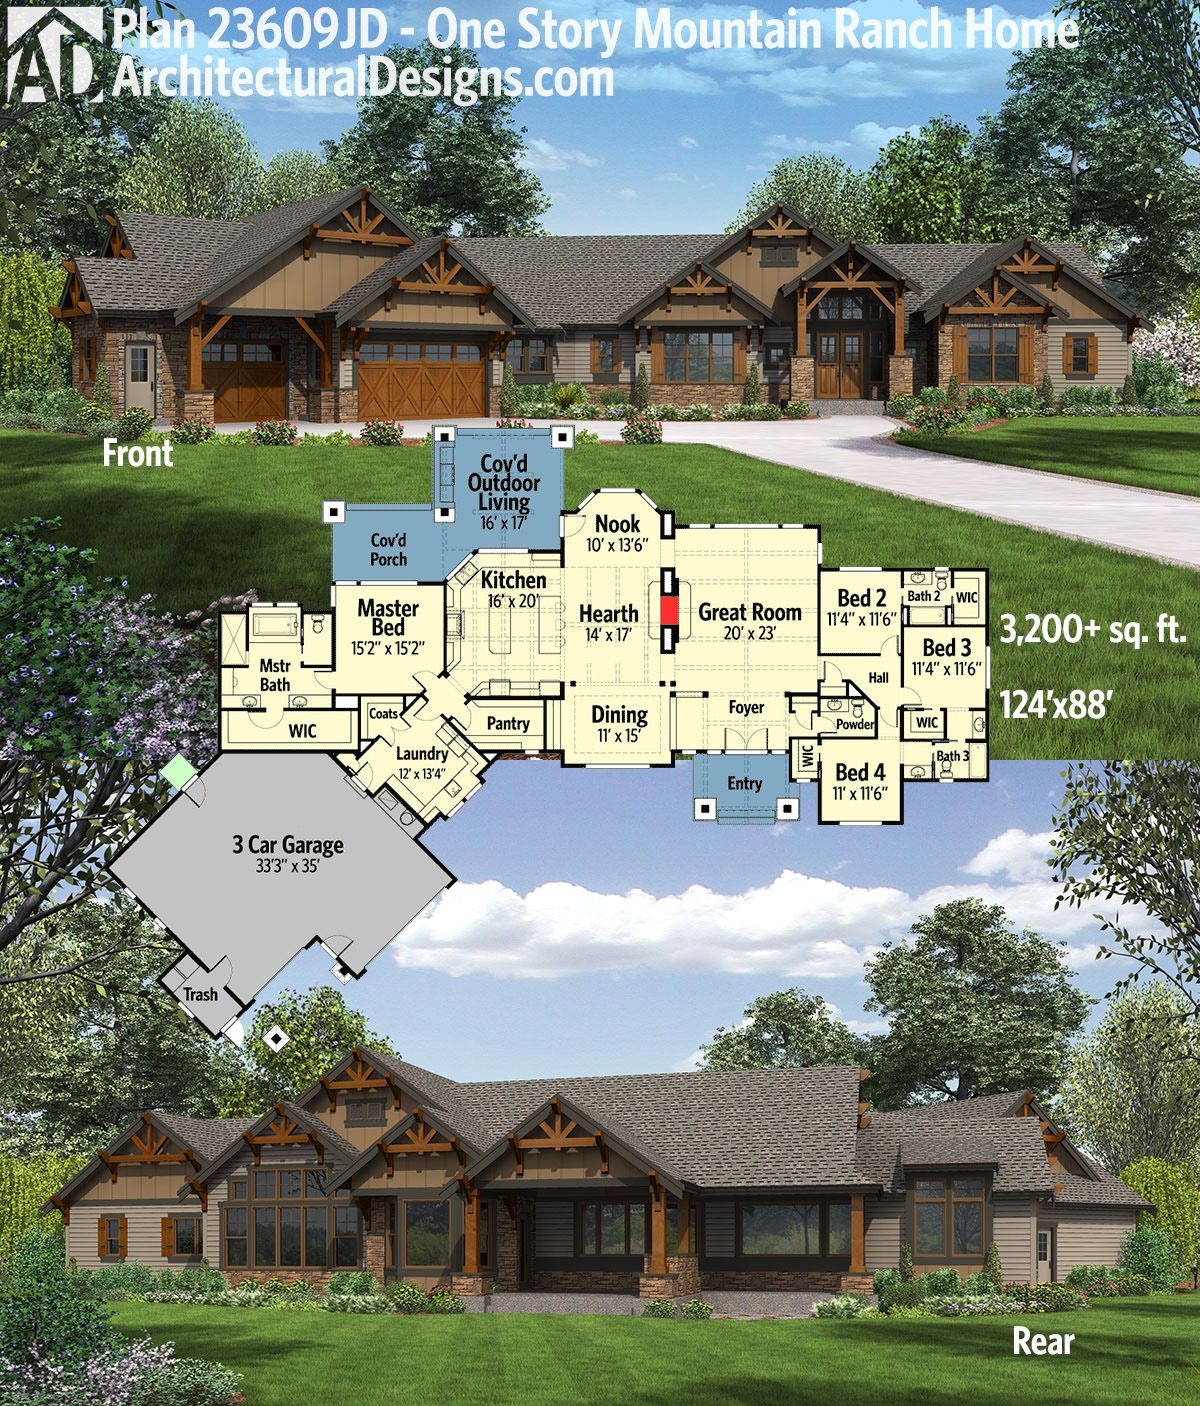 Charmant Architectural Designs One Story Mountain Ranch Home Plan 23609JD Gives You  Over 3,200 Square Feet Of